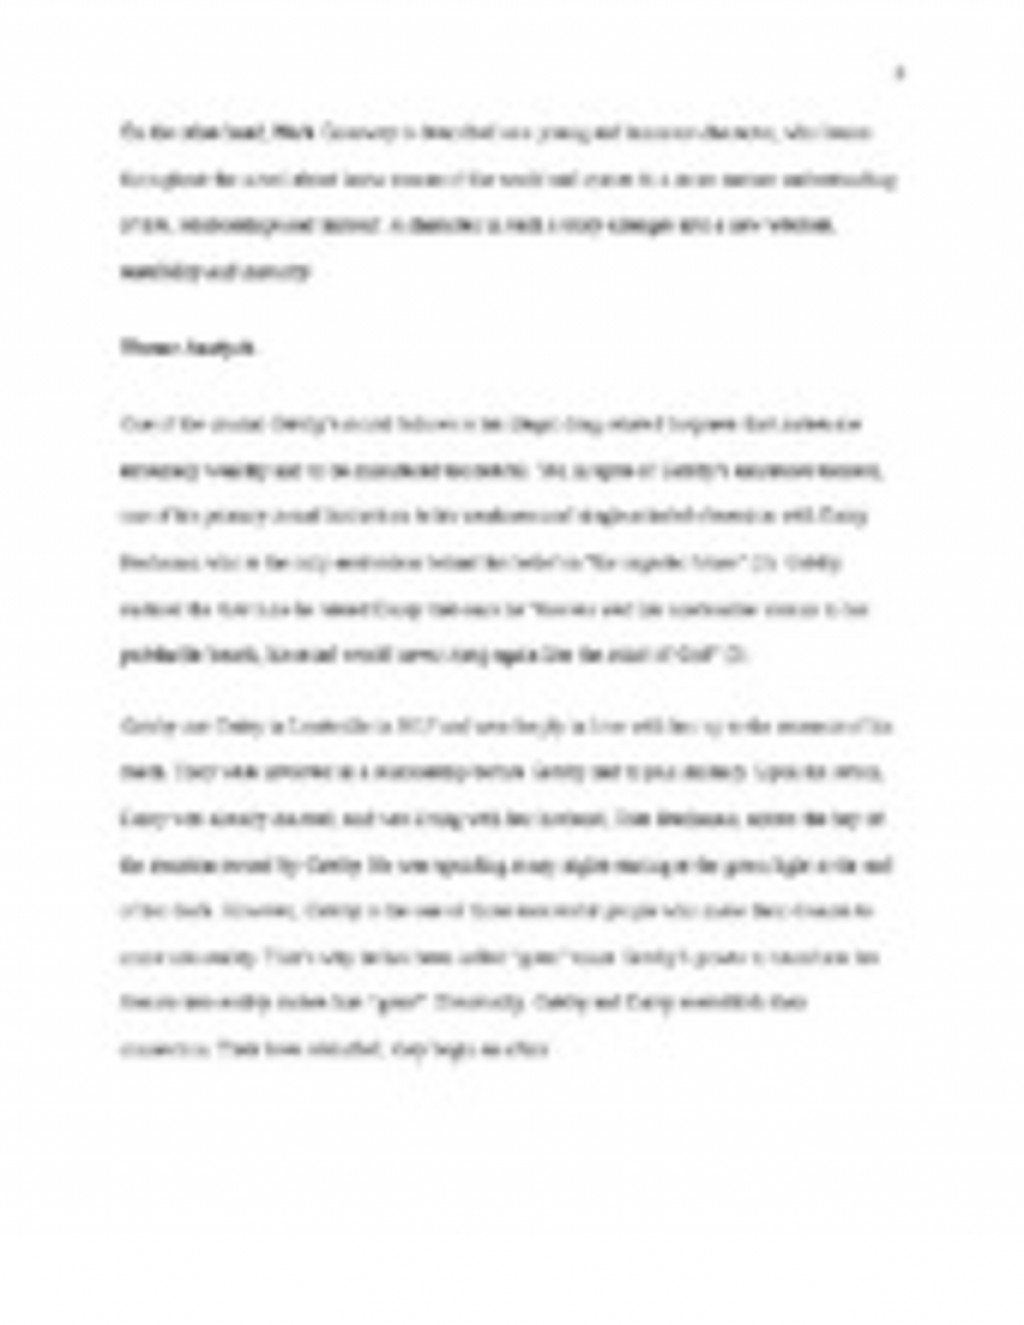 015 Great20american20novel20completedpage2 Essay Example Great Magnificent Gatsby Pdf Questions And Answers Chapter 1 Large